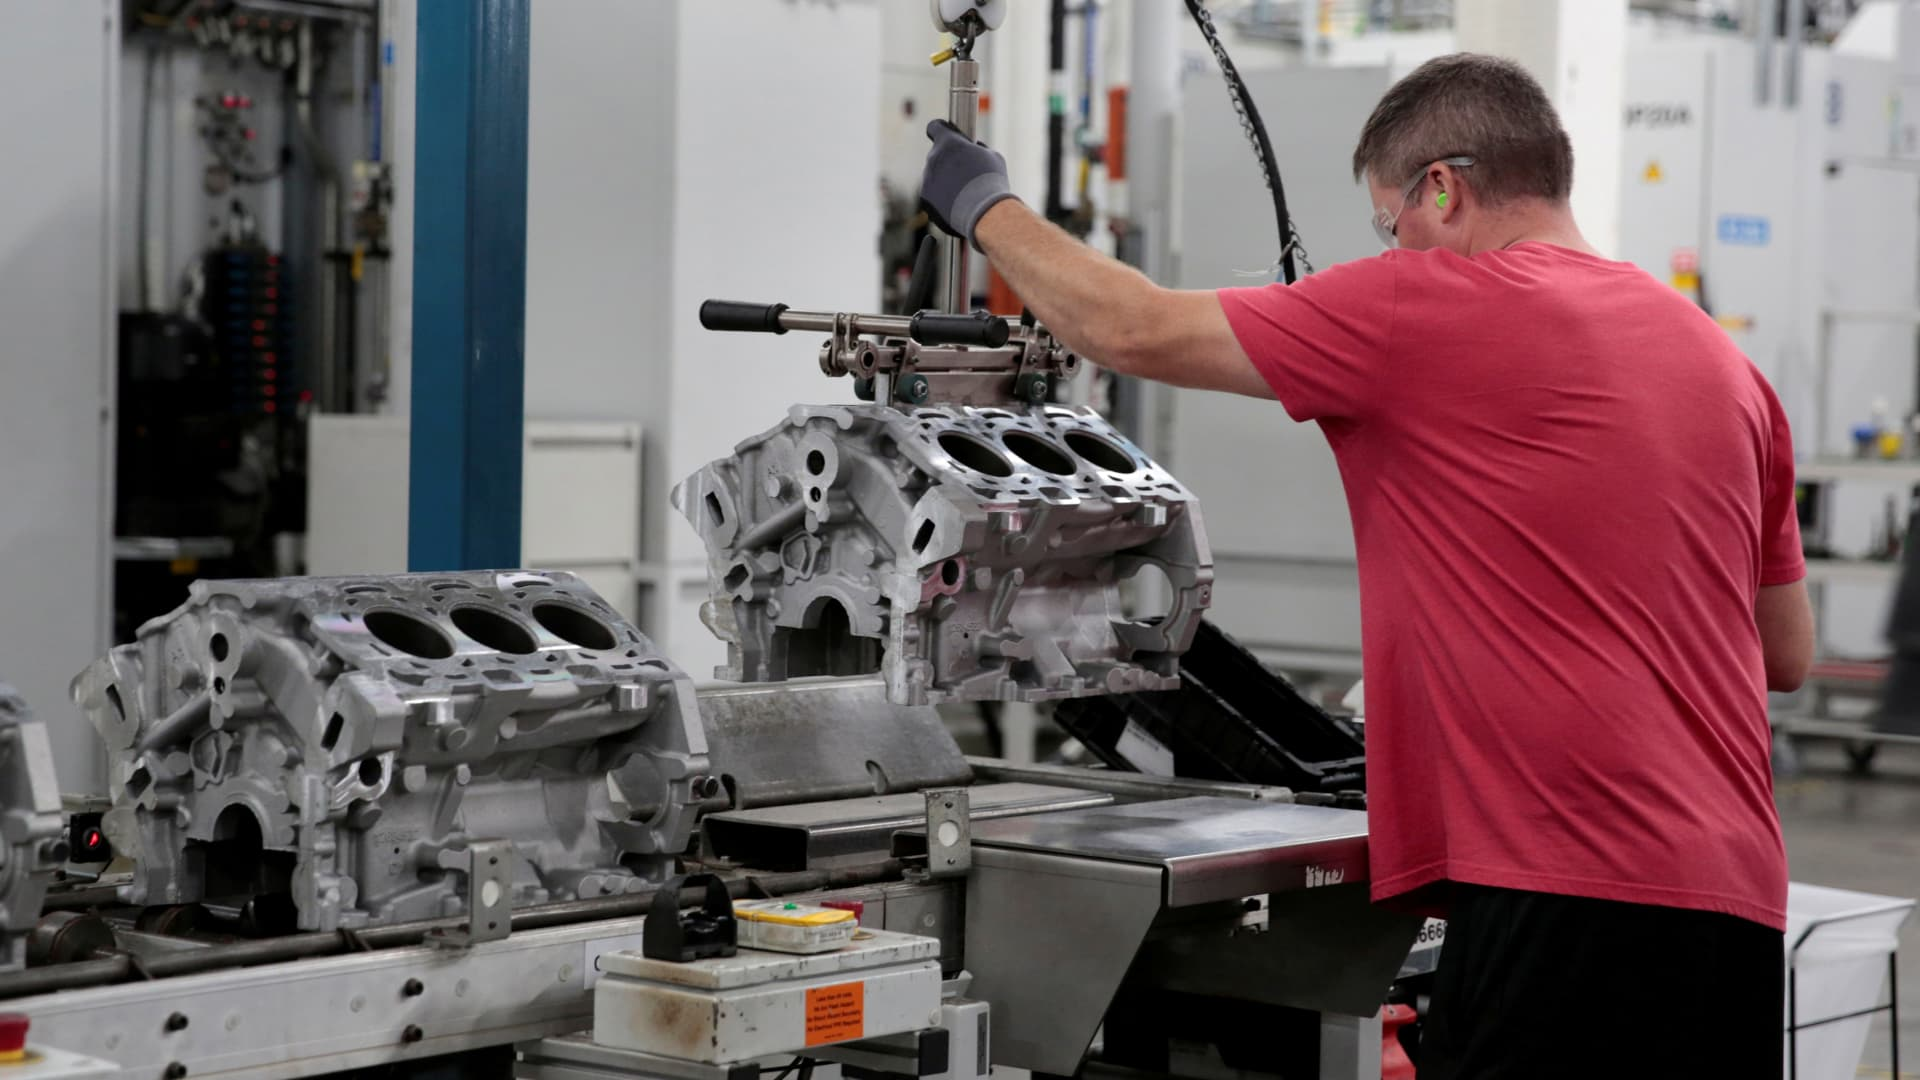 A General Motors assembly worker loads engine block castings on to the assembly line at the GM Romulus Powertrain plant in Romulus, Michigan, U.S. August 21, 2019.